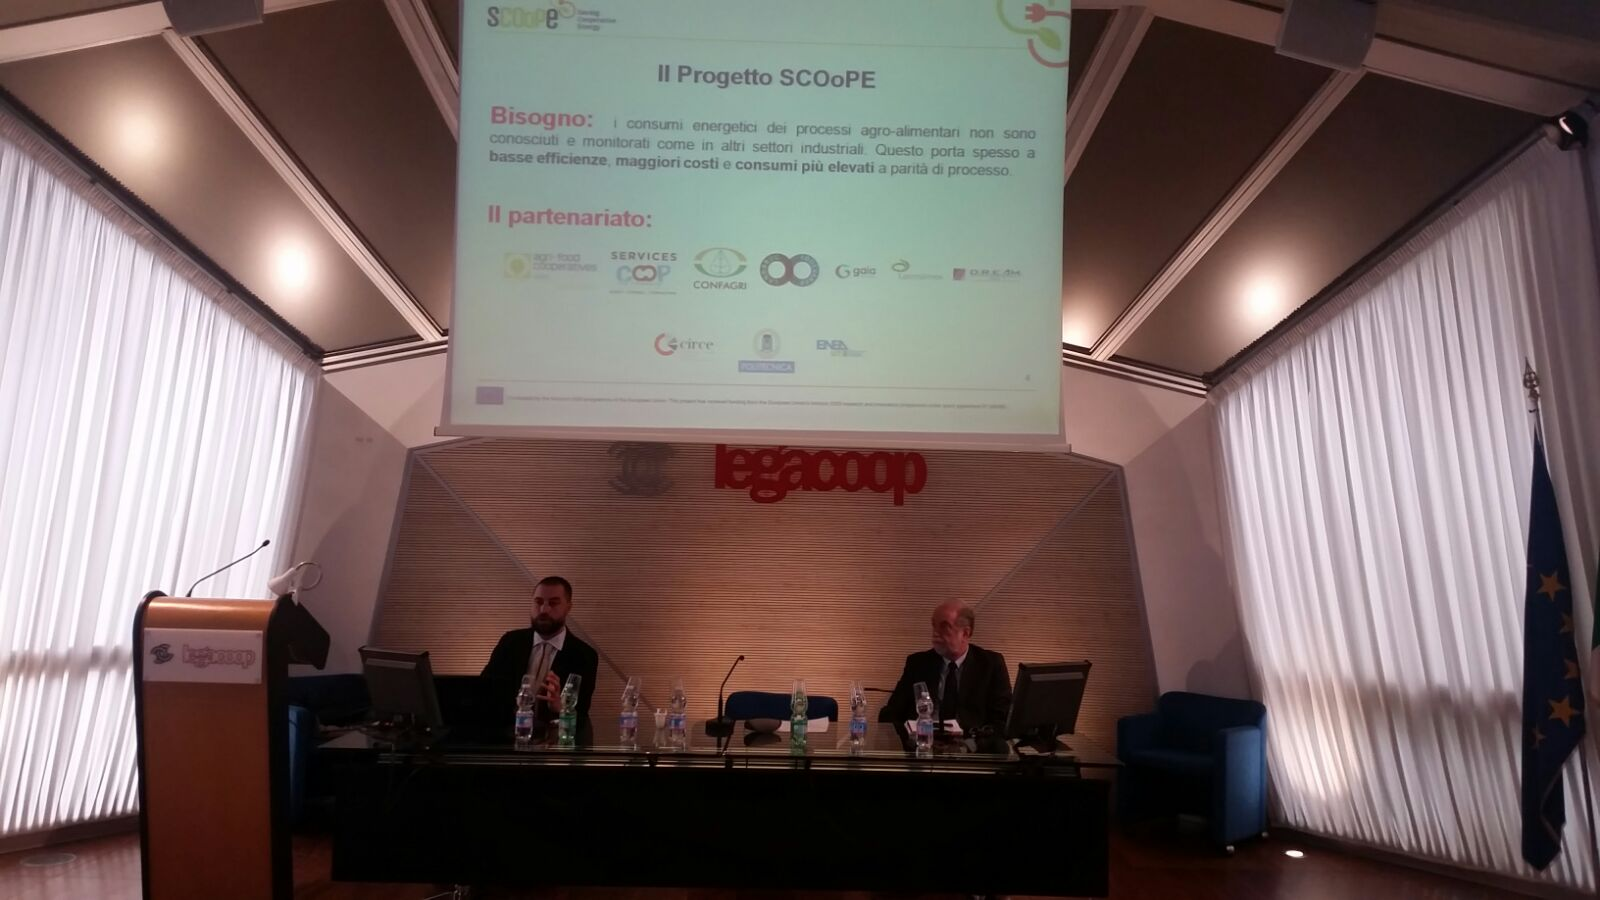 First Italian SCOoPE project brokerage event / Primo Brokerage Event italiano del progetto SCOoPE